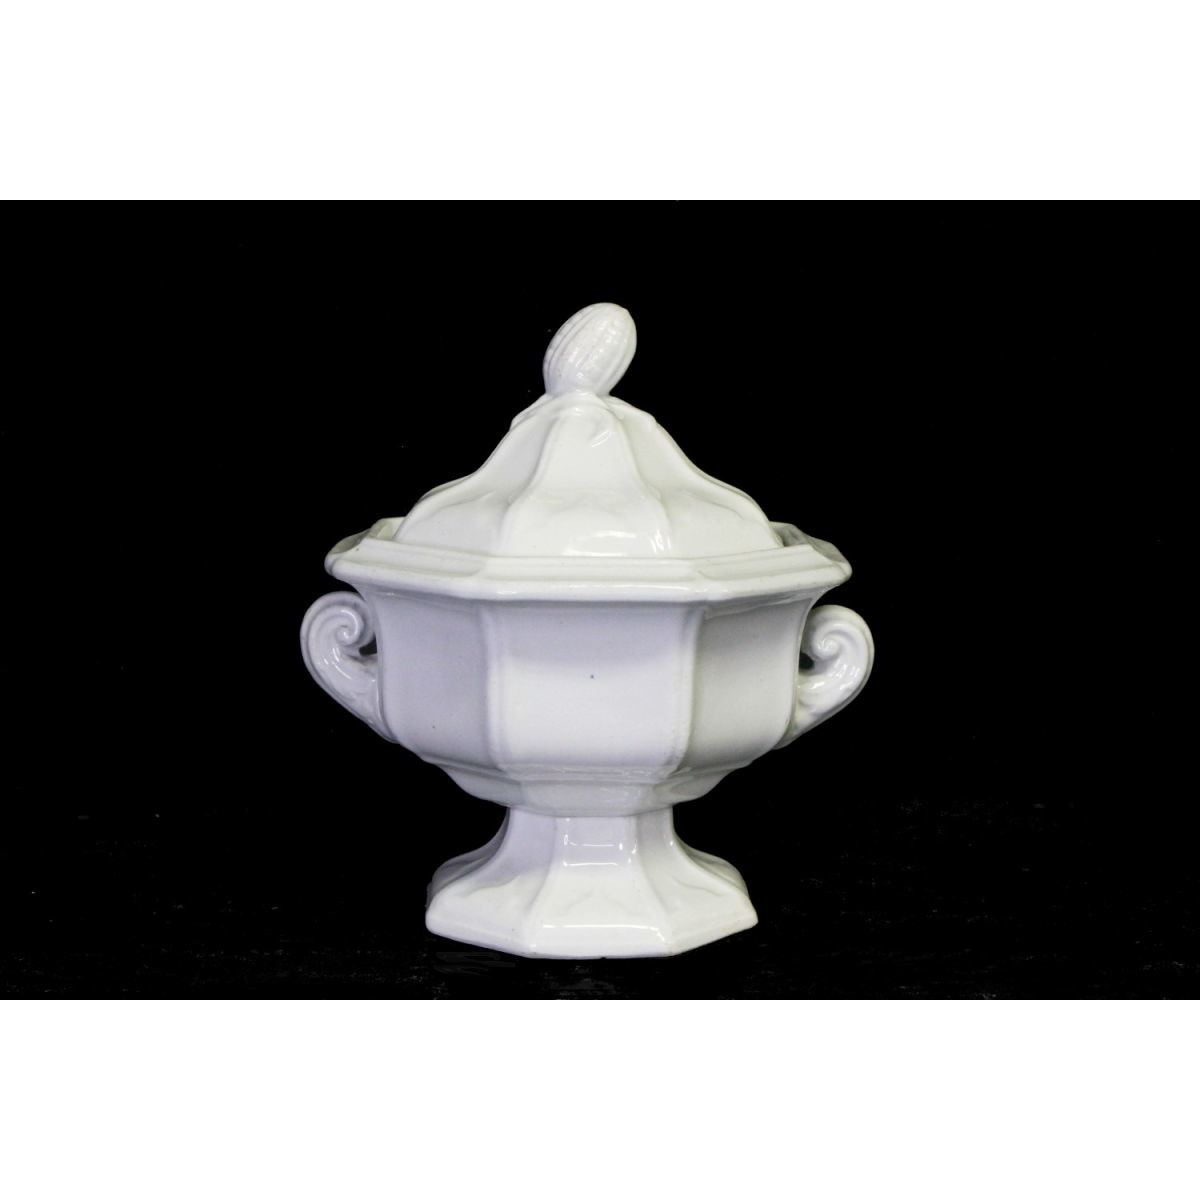 Gorgeous Corn Finial Small Sauce Ironstone Tureen